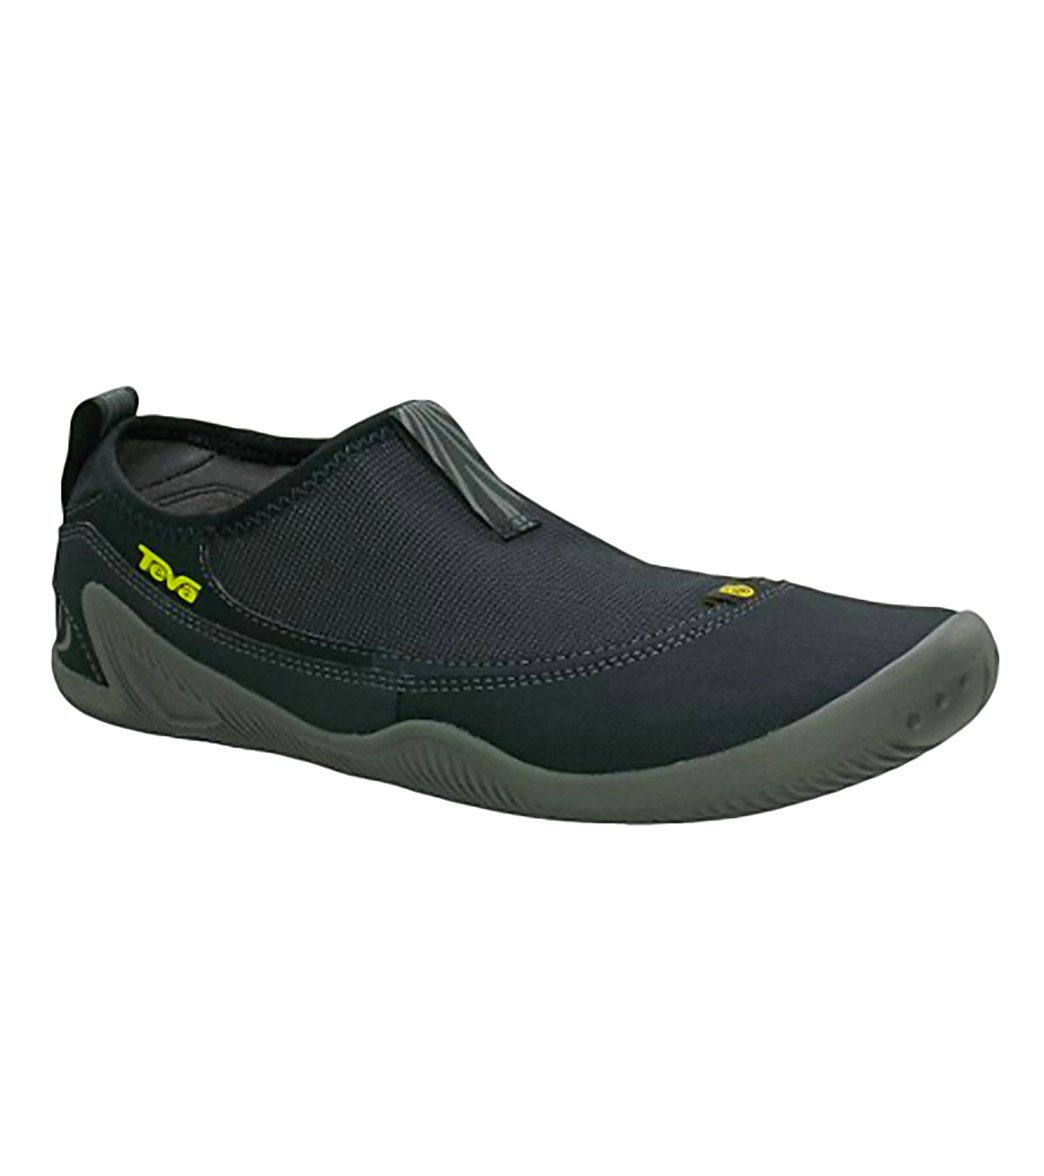 db5aa9f28bc4 Teva Men s Nilch Water Shoes at SwimOutlet.com - Free Shipping